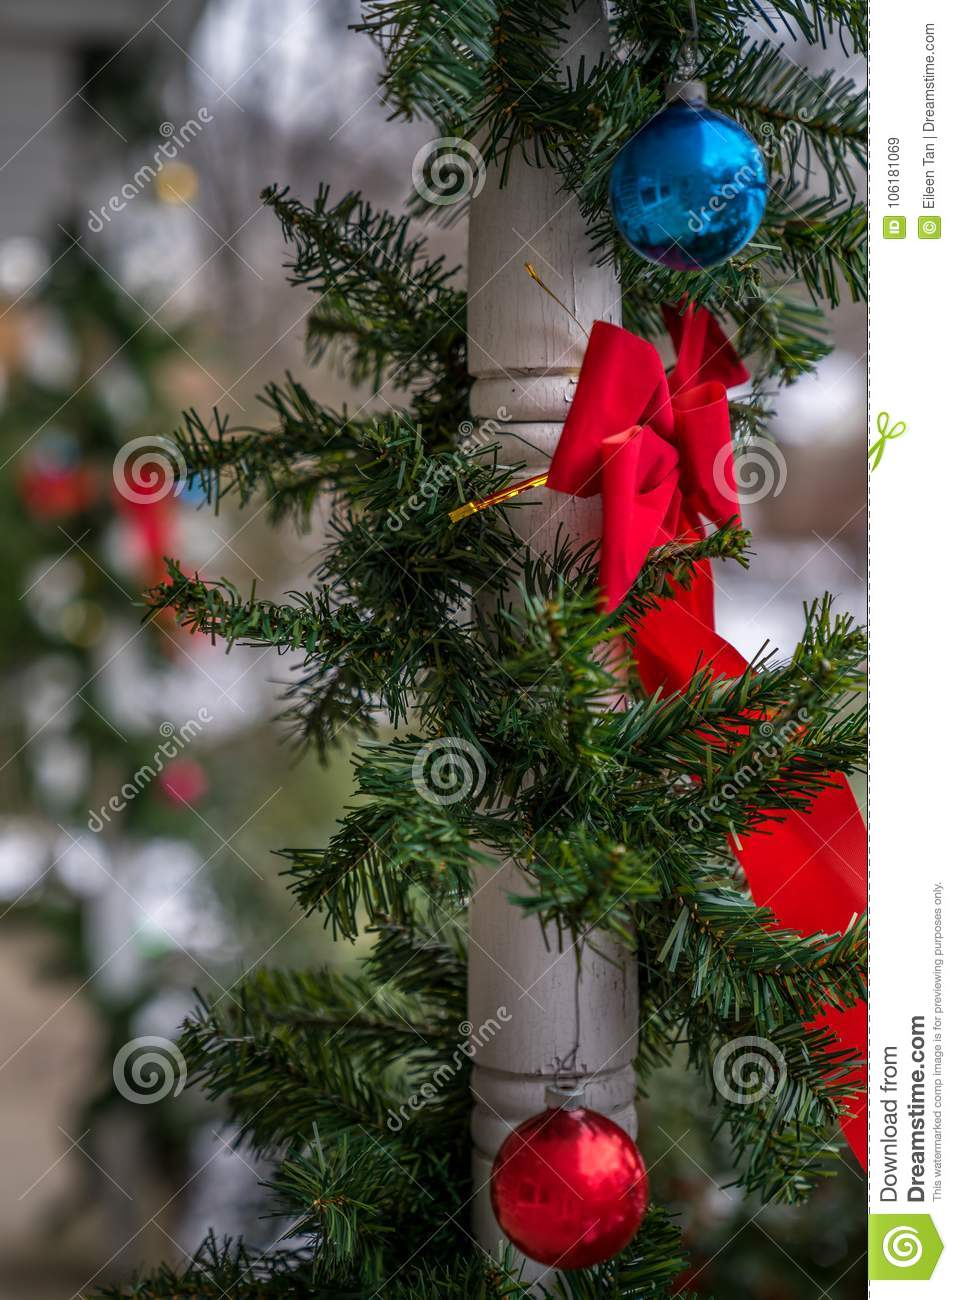 download outdoor christmas decorations stock image image of outdoors snow 106181069